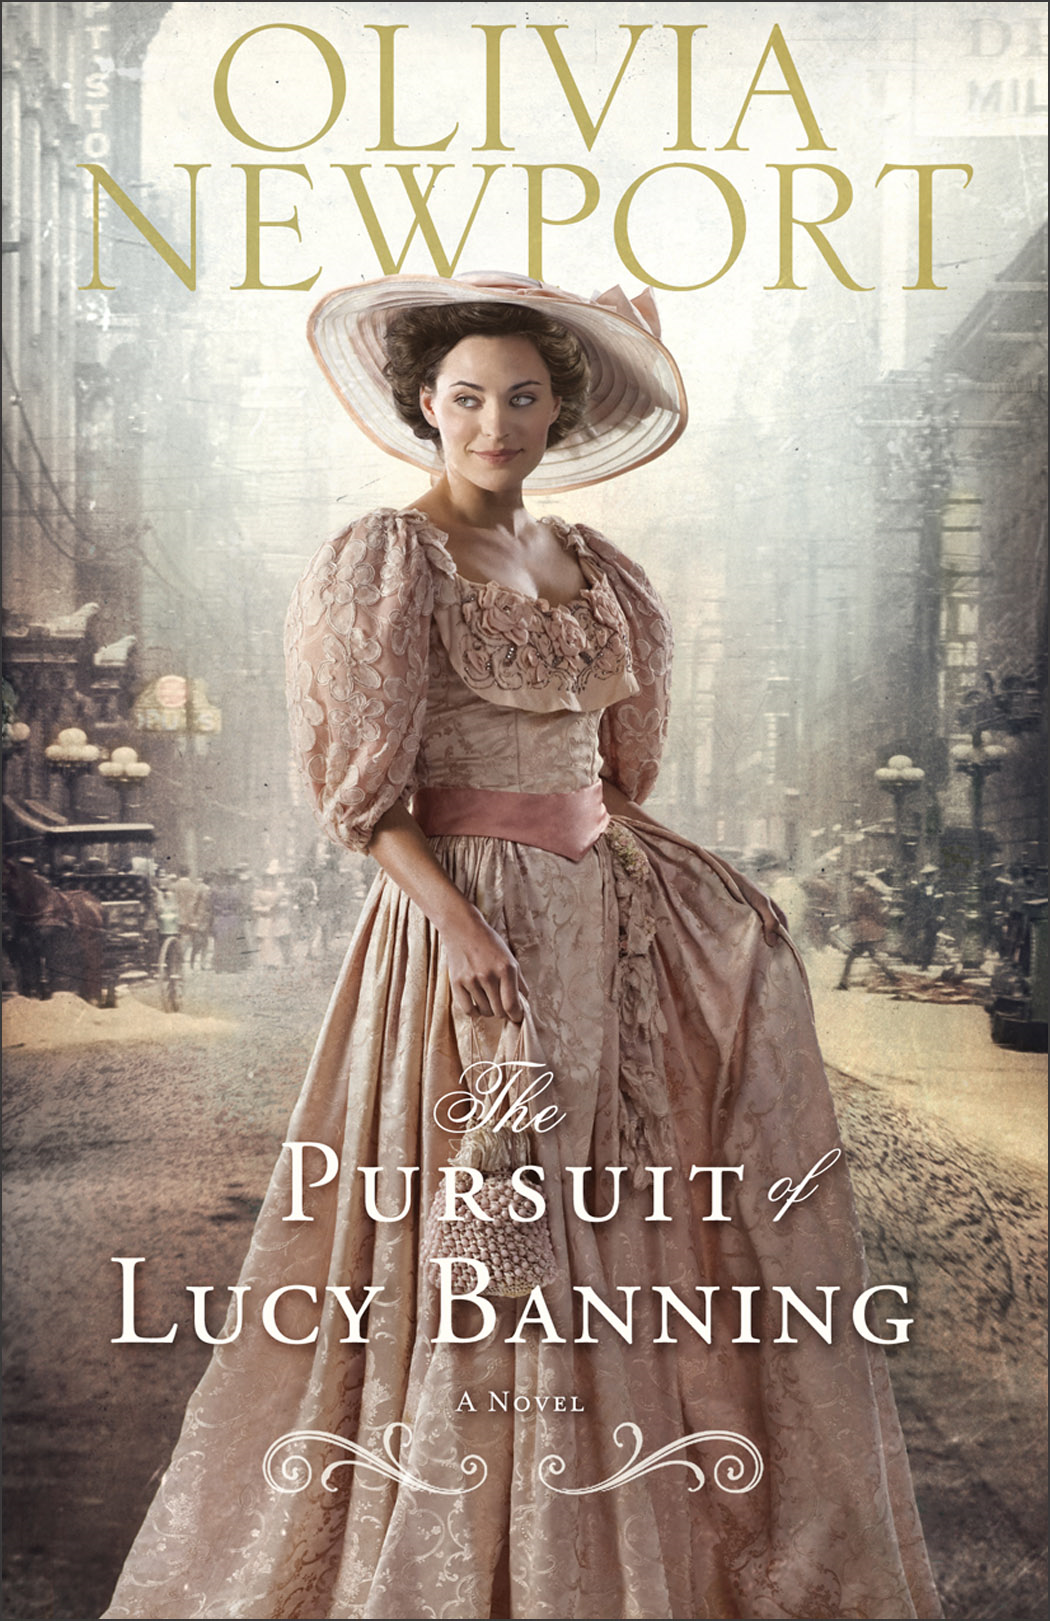 Pursuit of Lucy Banning, The (Avenue of Dreams Book #1)